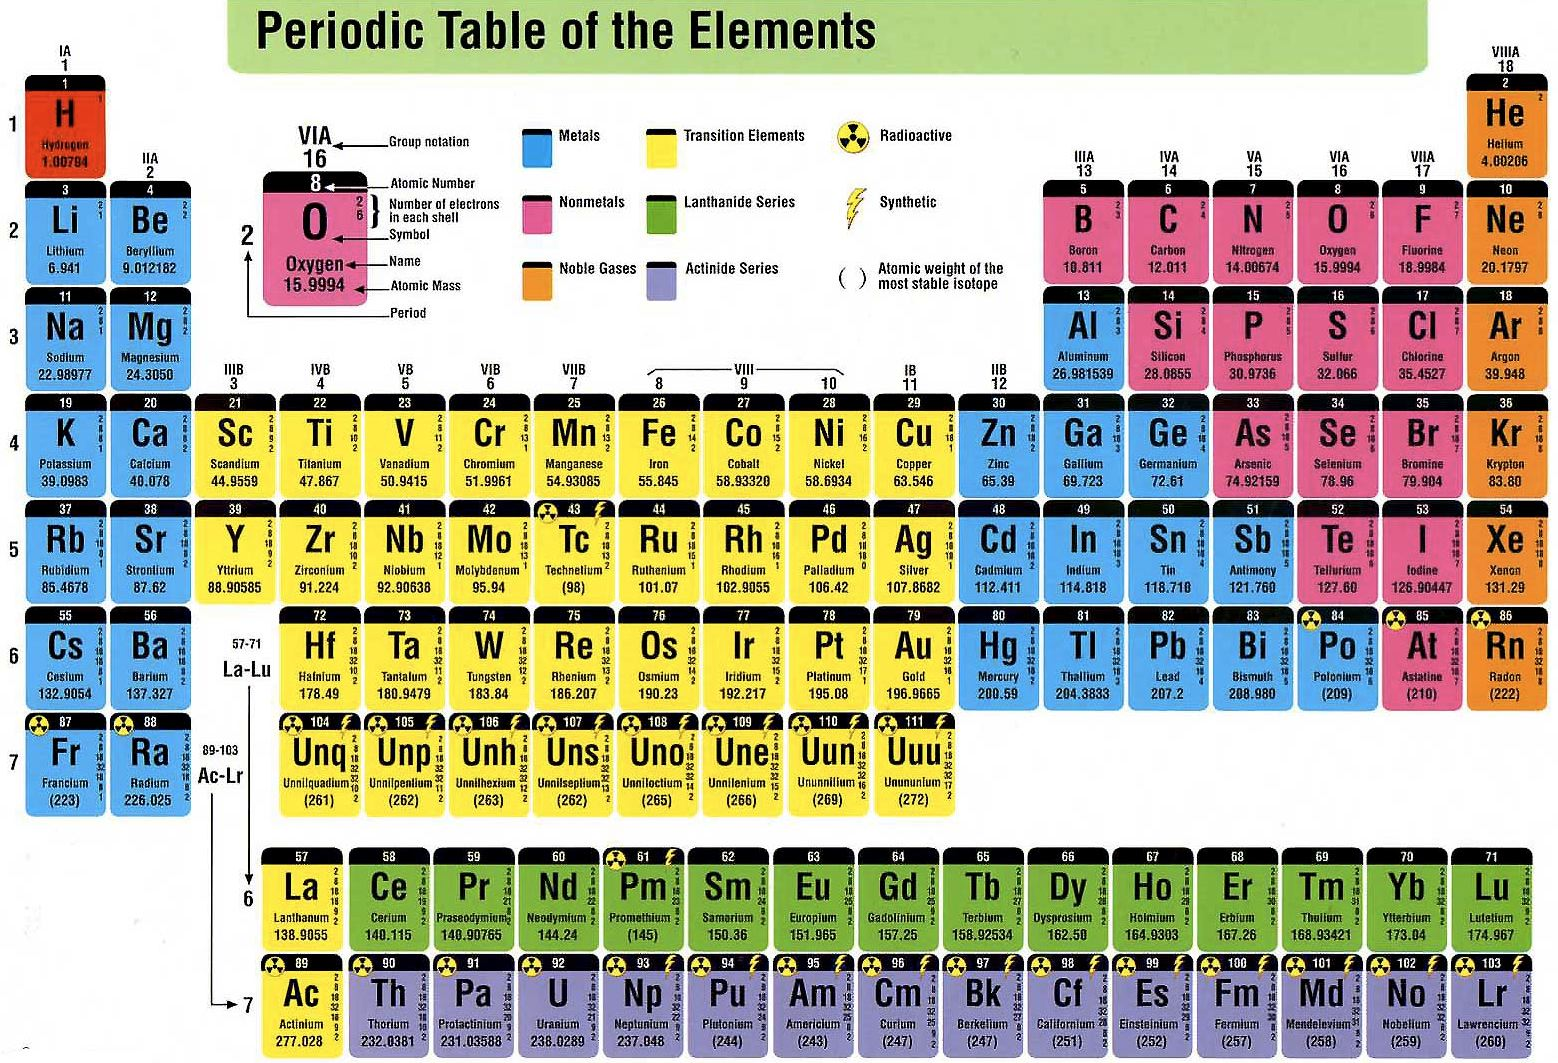 The Back Bencher's Tip to learn the Periodic Table